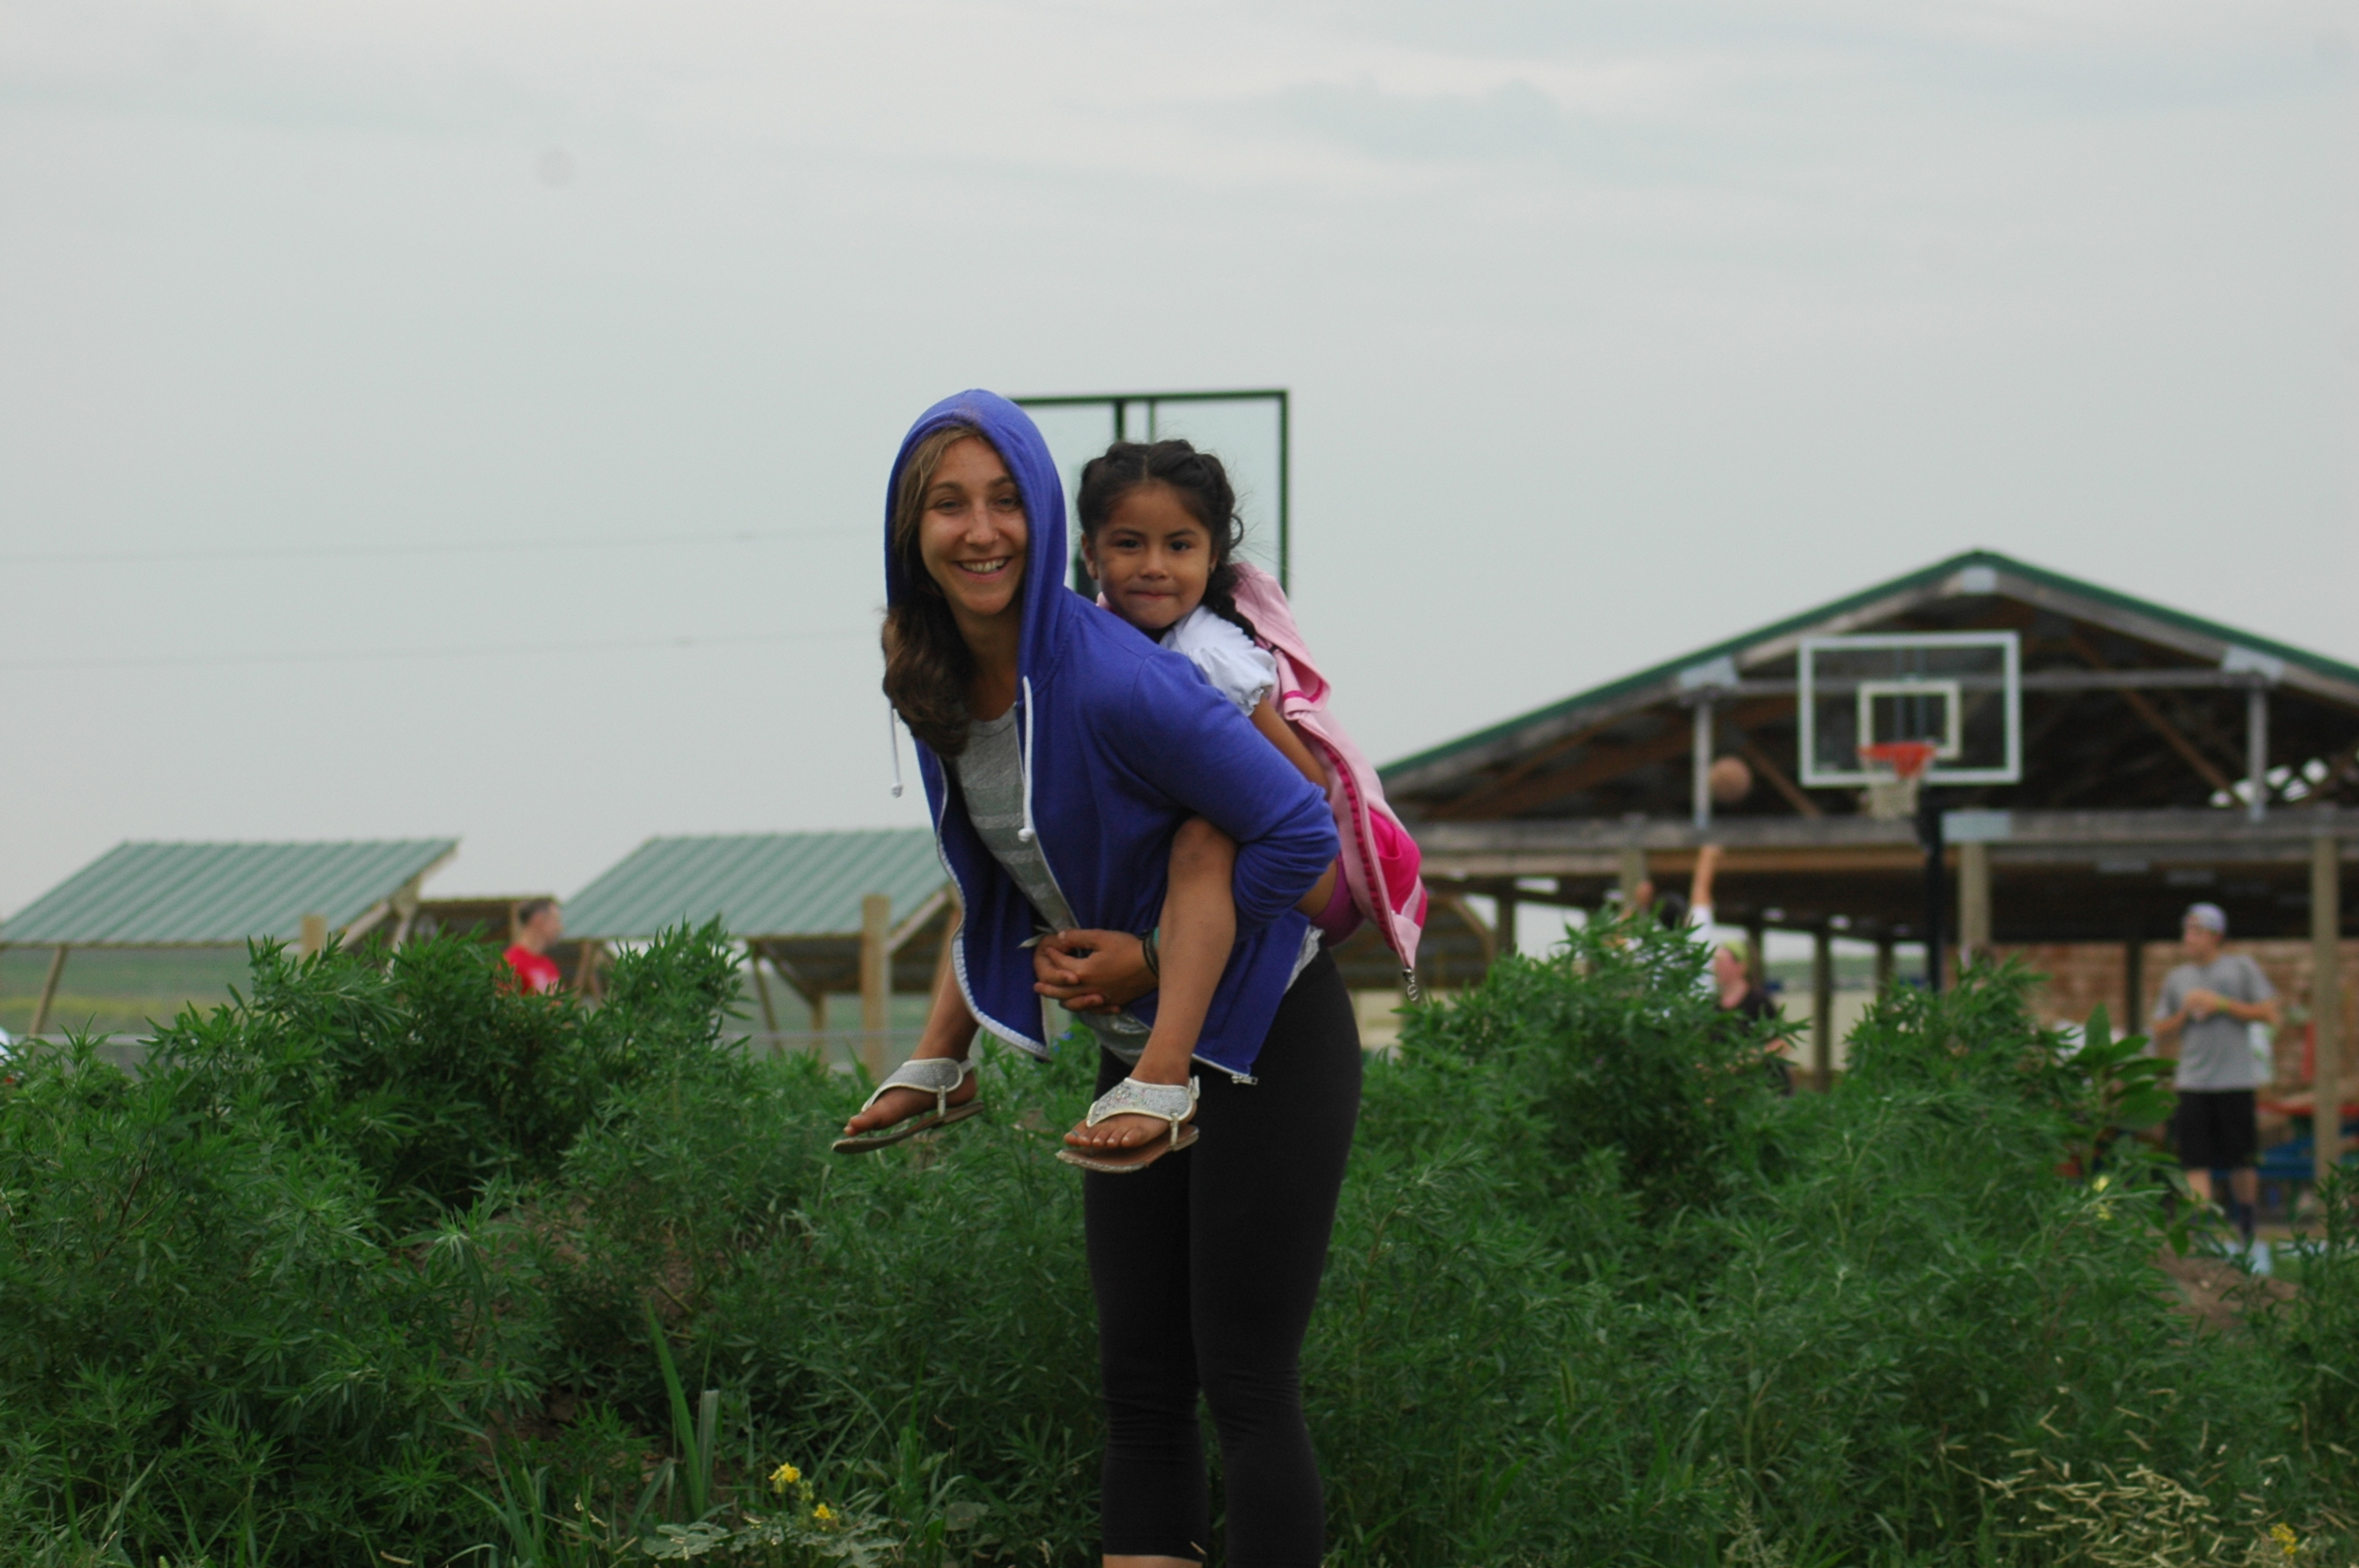 Piggyback rides are always a hit with the kids! (A.Gross, La Plant, July 2015)